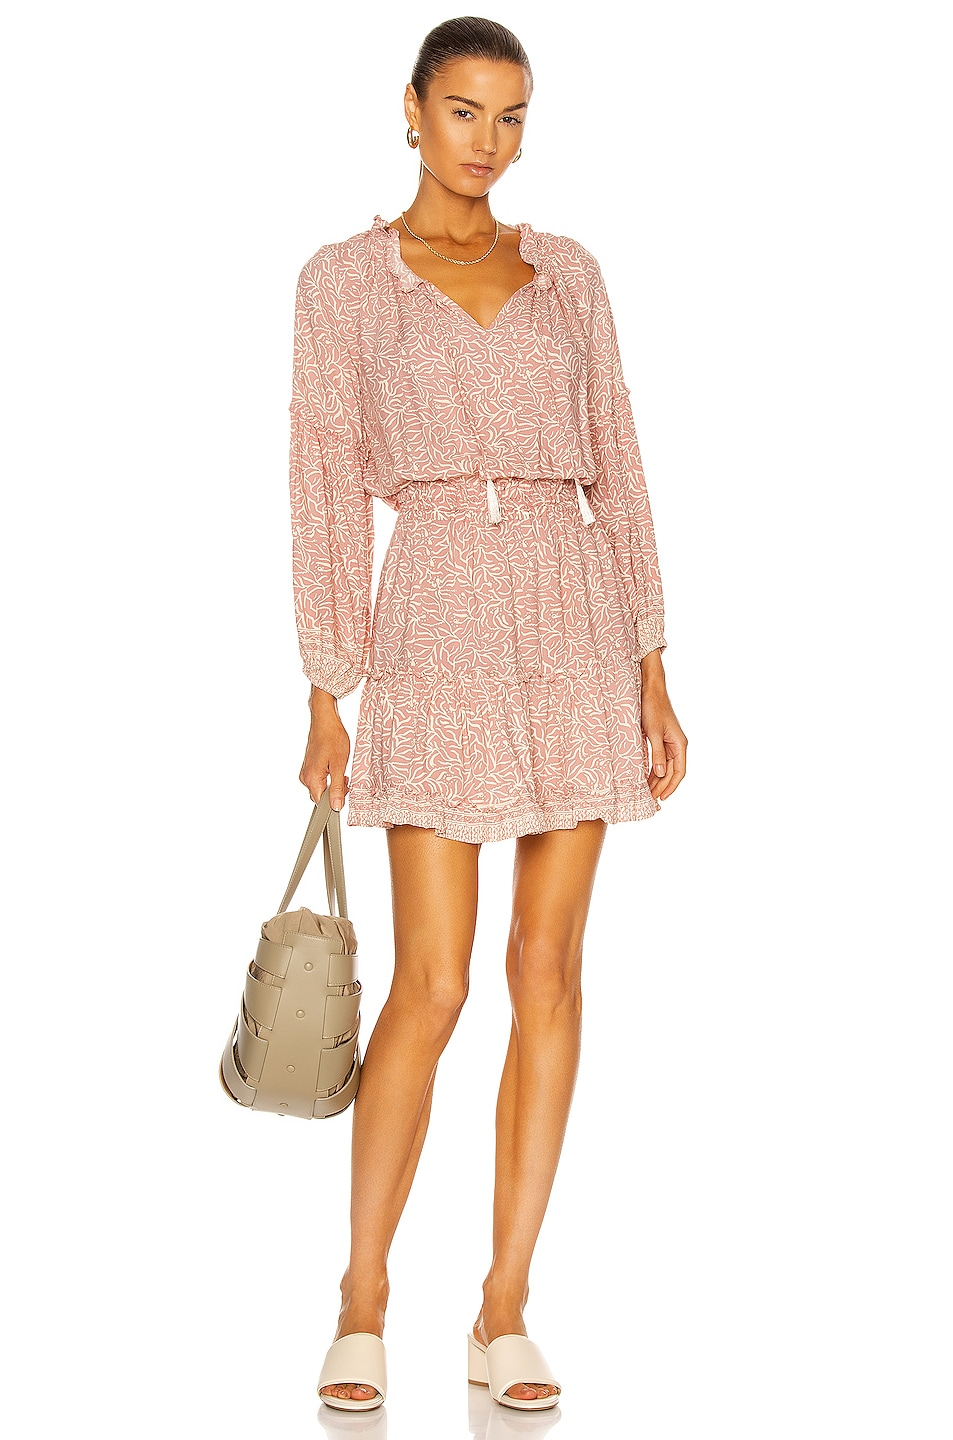 Image 1 of Natalie Martin Maggie Dress in Coral Blush